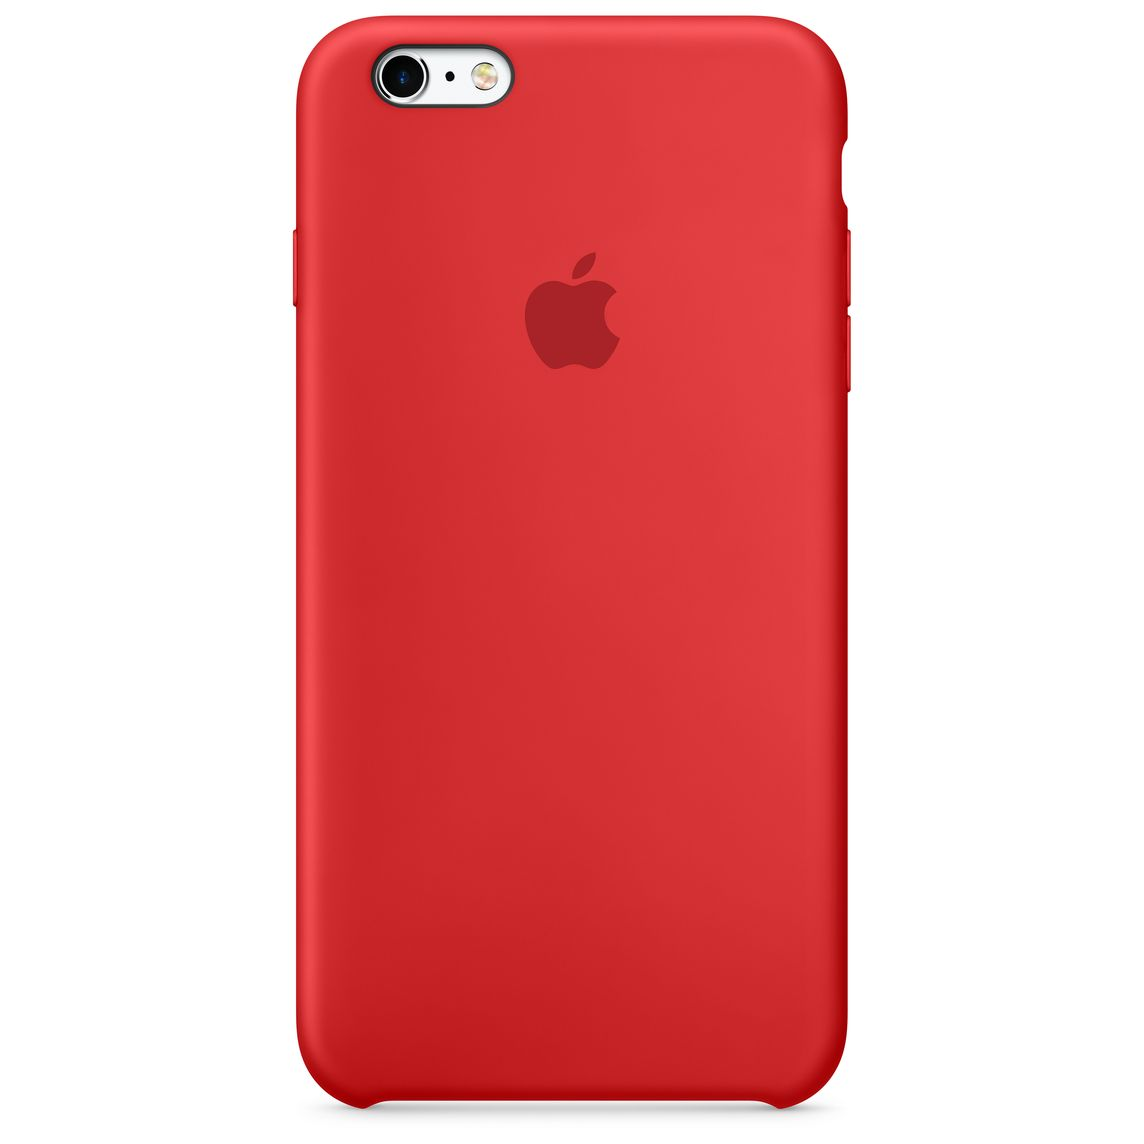 separation shoes 42cb1 edbbc iPhone 6 Plus / 6s Plus Silicone Case - (PRODUCT)RED